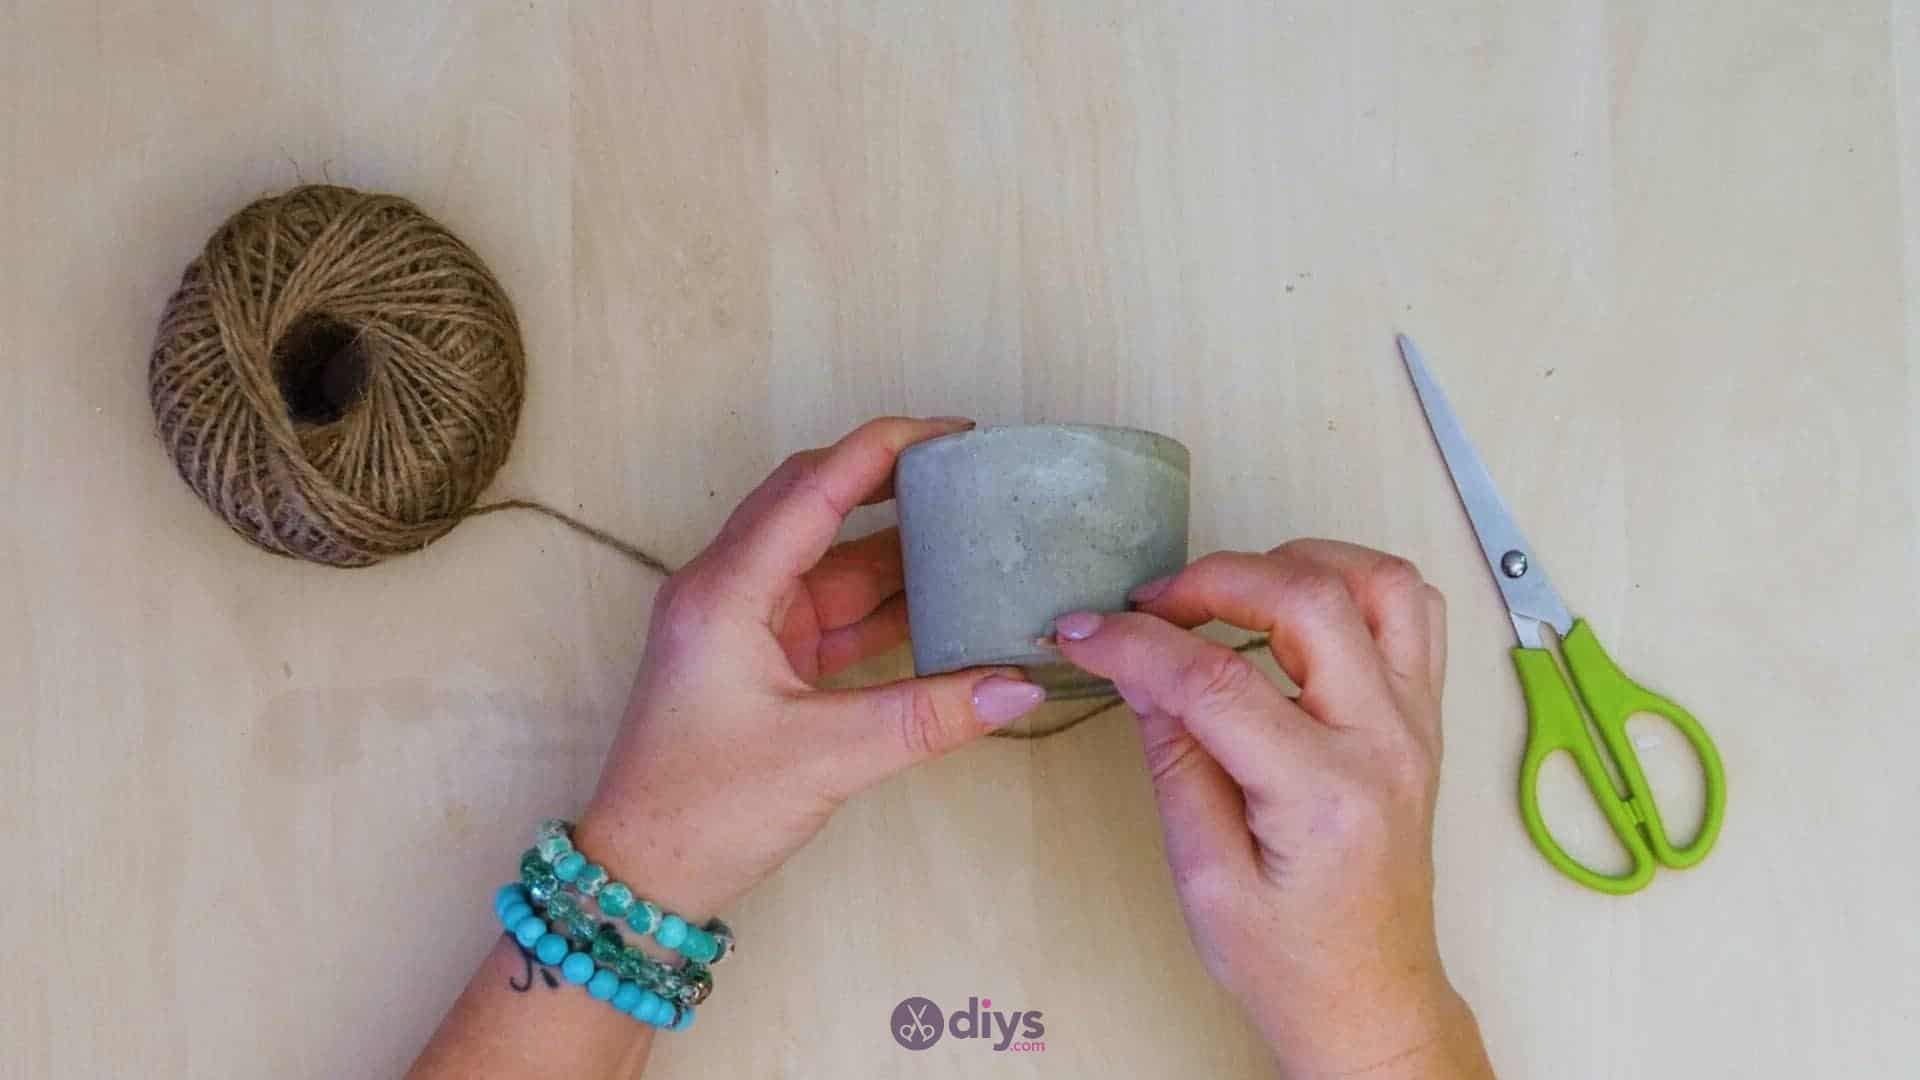 Diy small concrete planter step wrapping